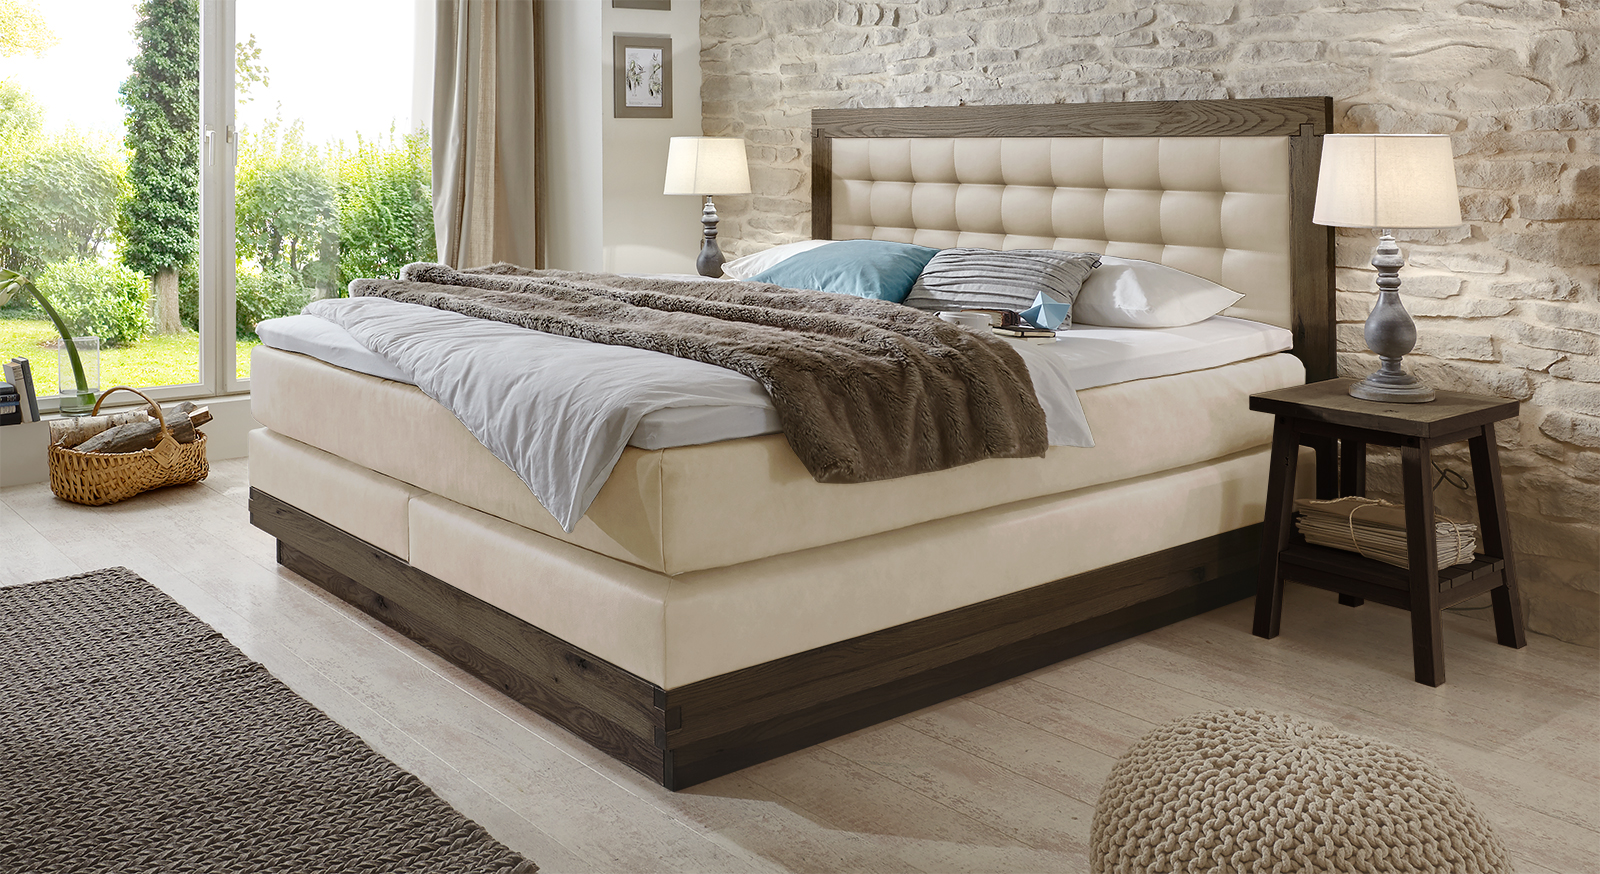 Boxspringbett Galicia in Wildeiche coffee und Kunstleder in Beige